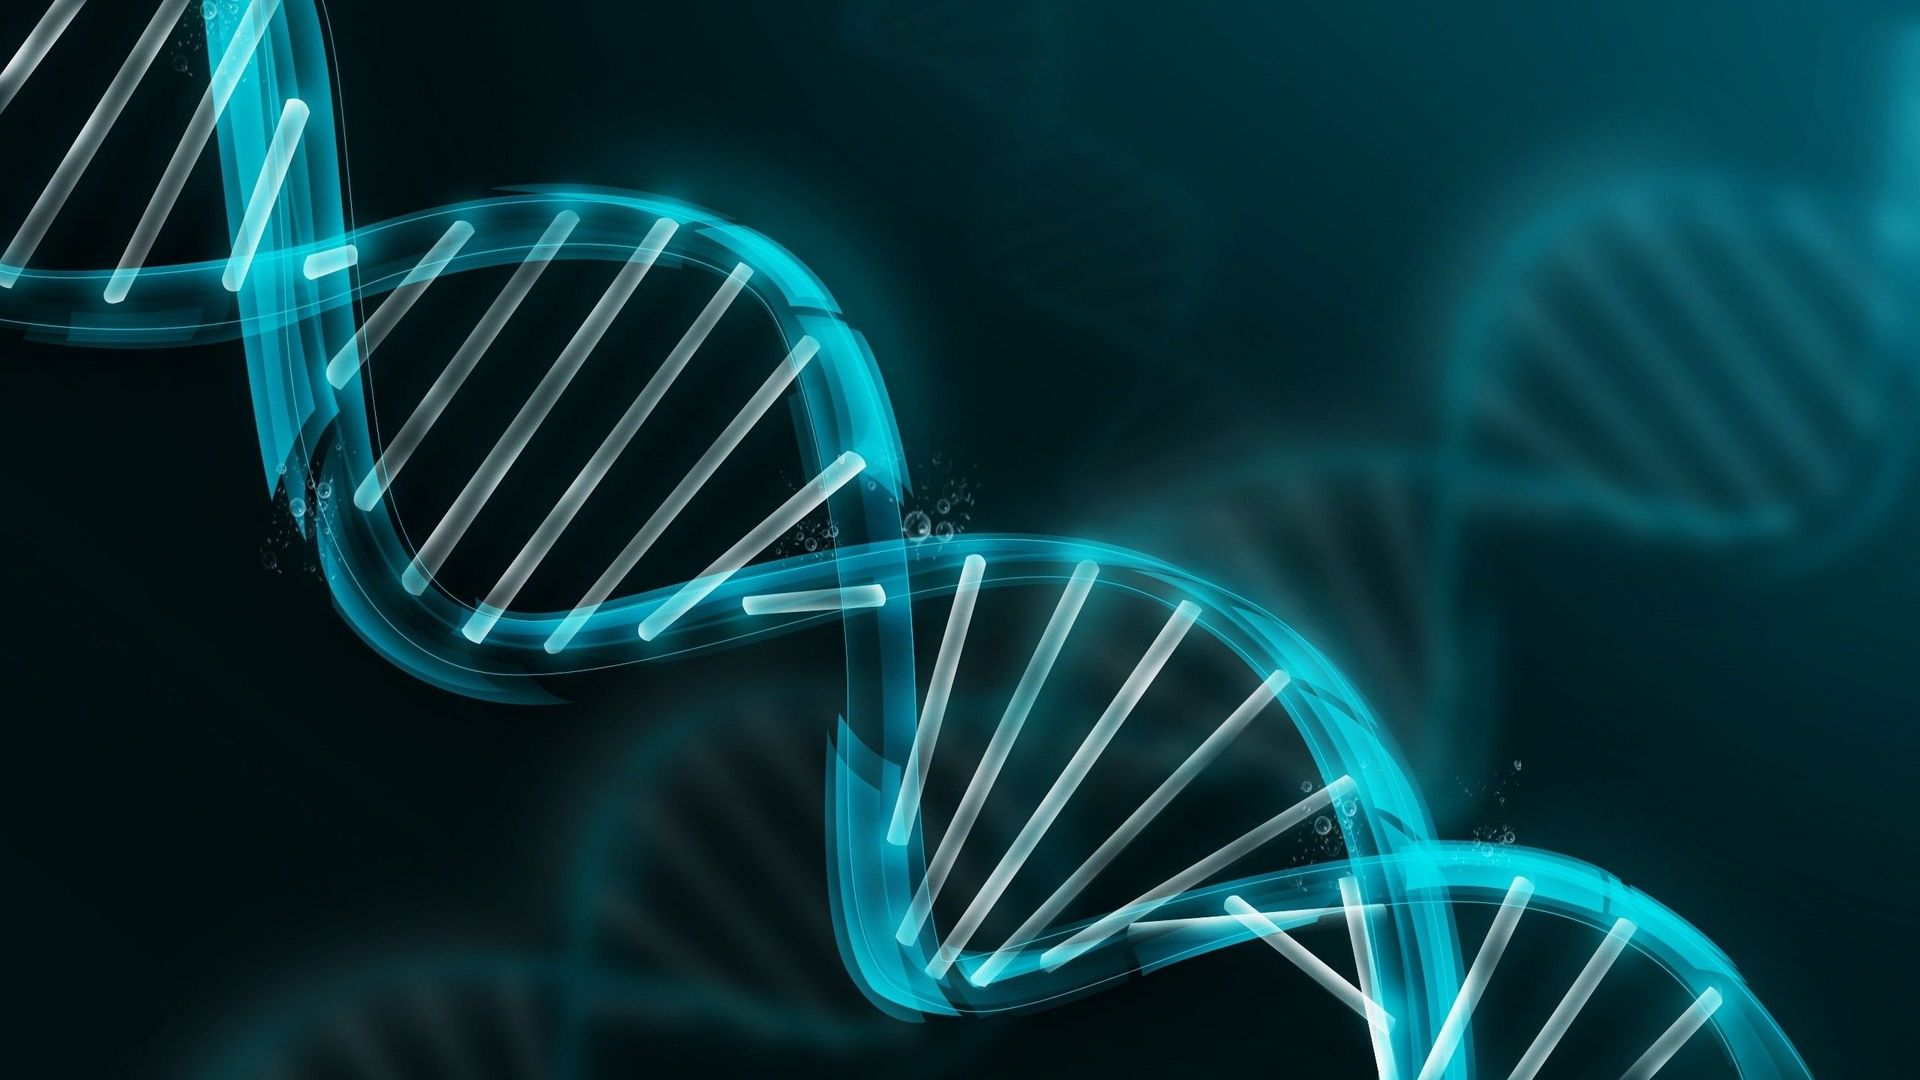 2560x1024 Hd Wallpaper Dna Structure Full Hd 壁纸 And 背景 1920x1080 Id 482896